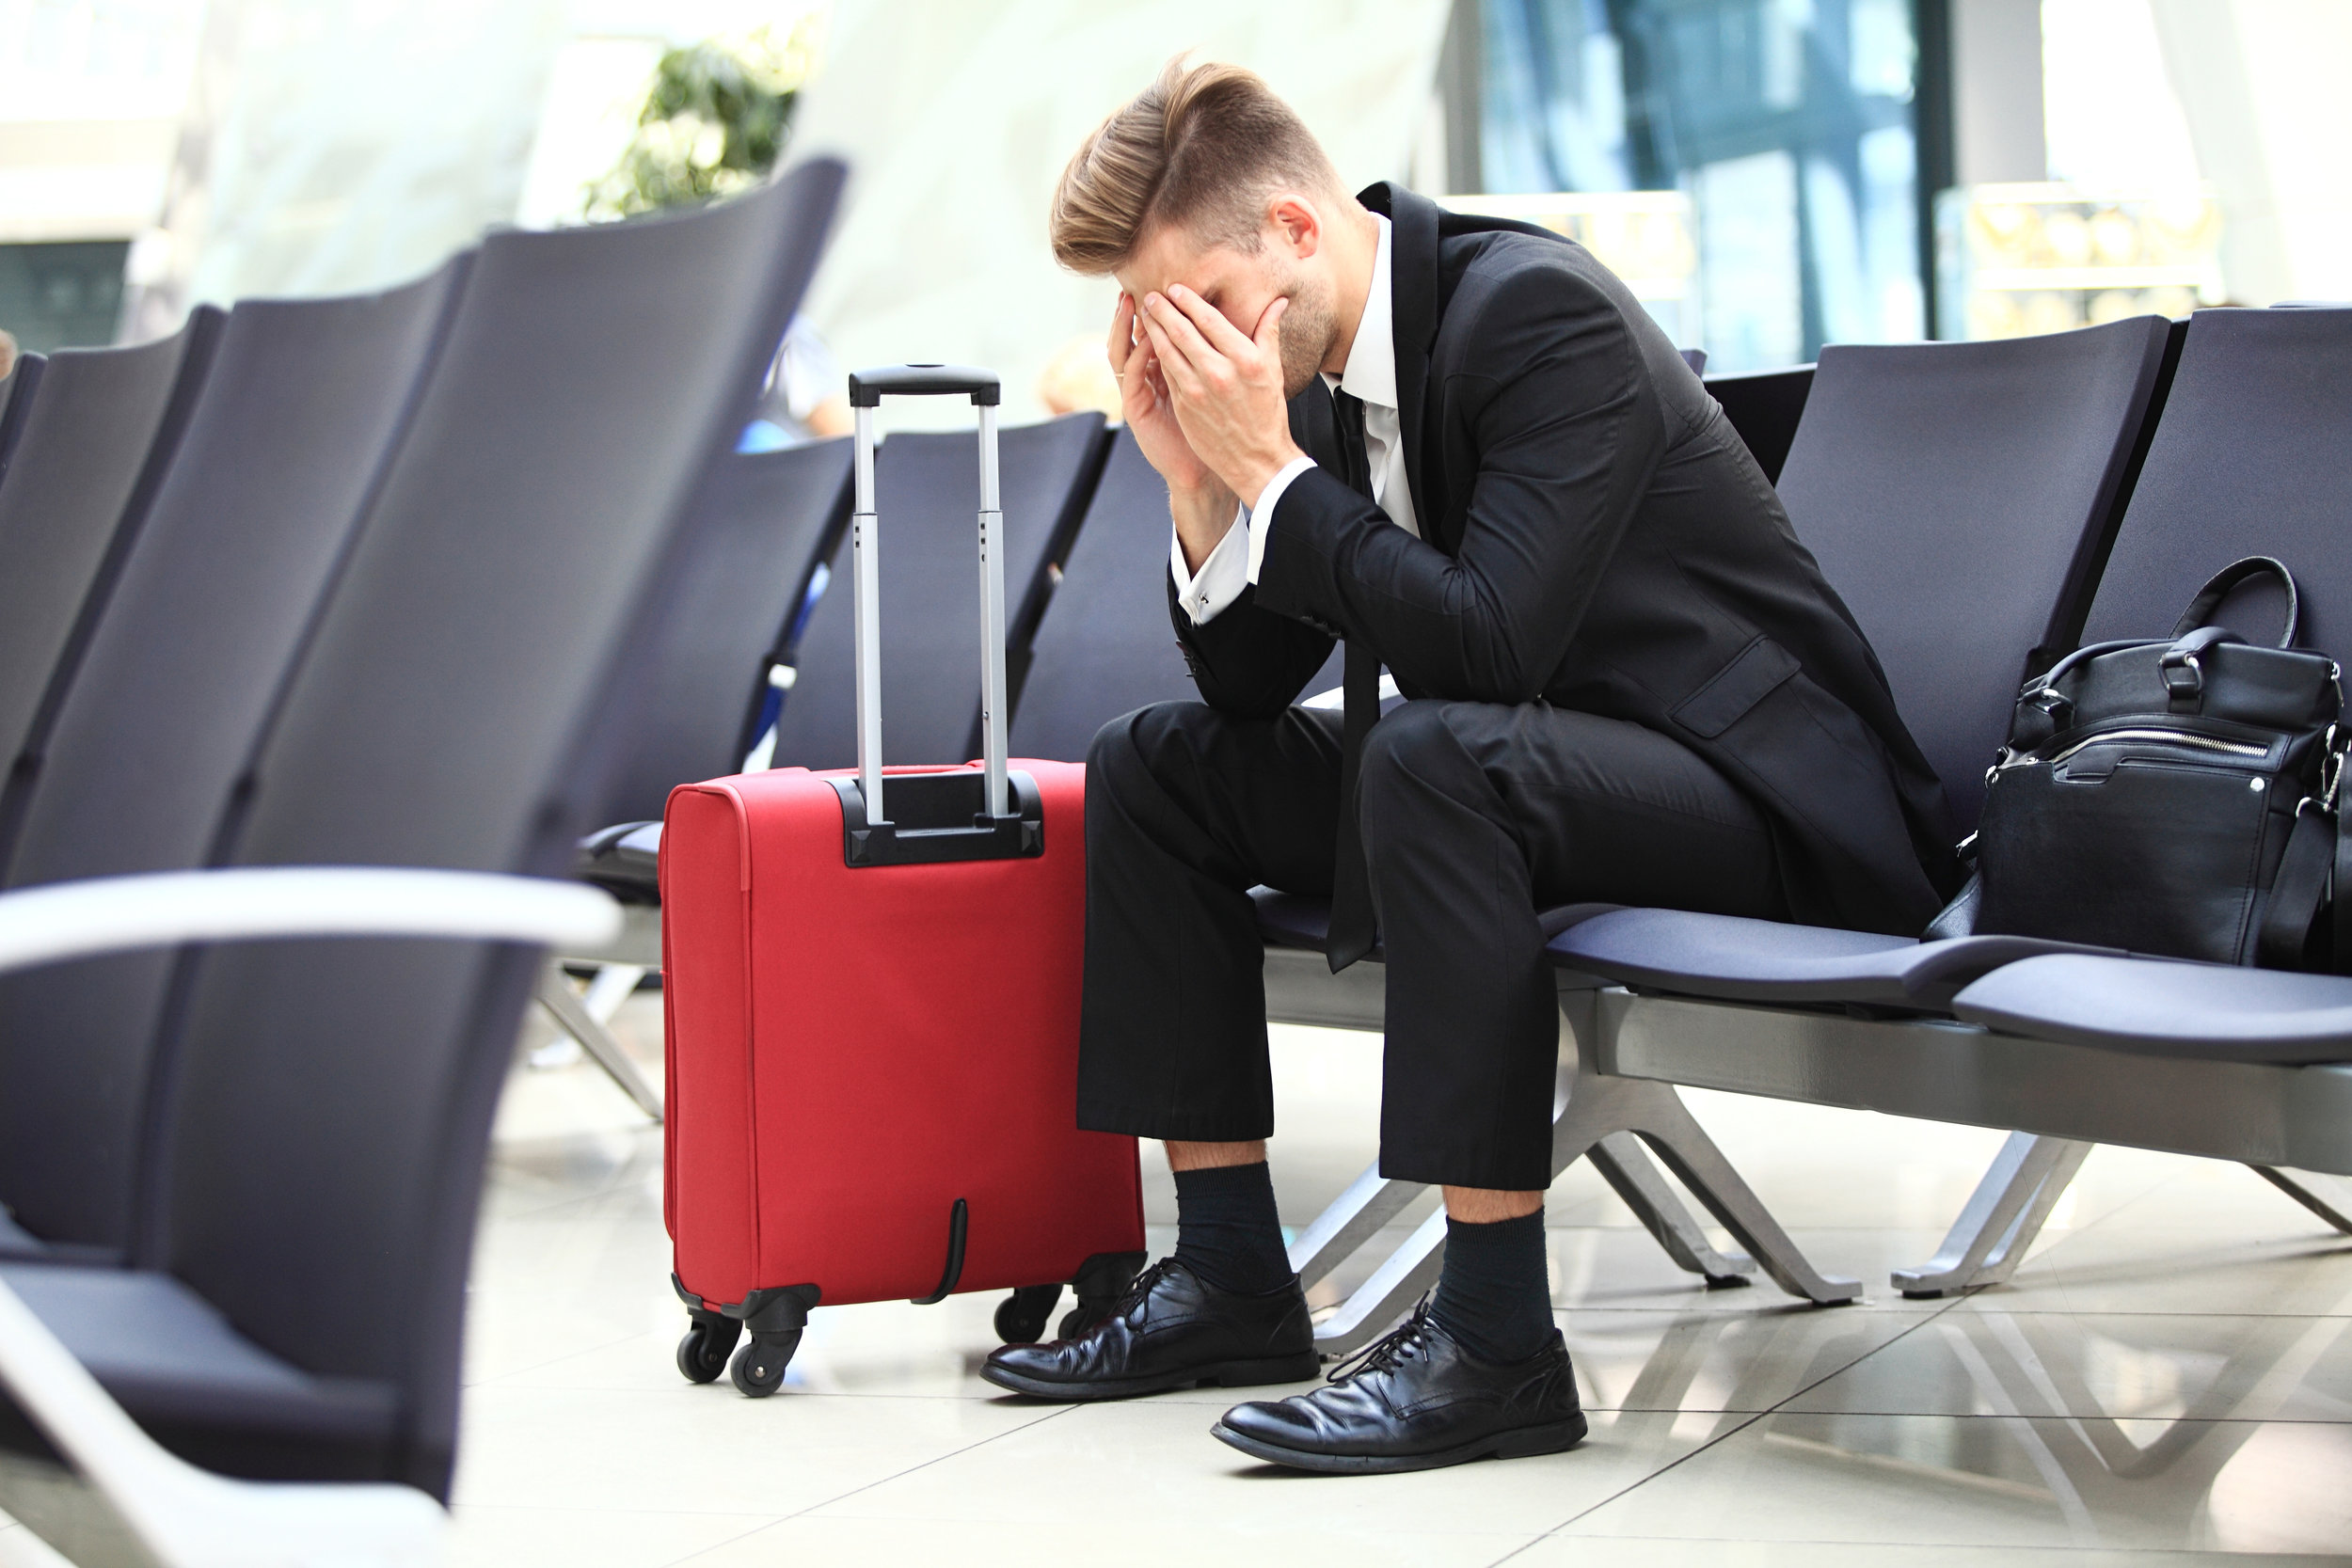 frustrated_business_traveler_at_the_airport_sanctifly_travel_wellness_app.jpeg